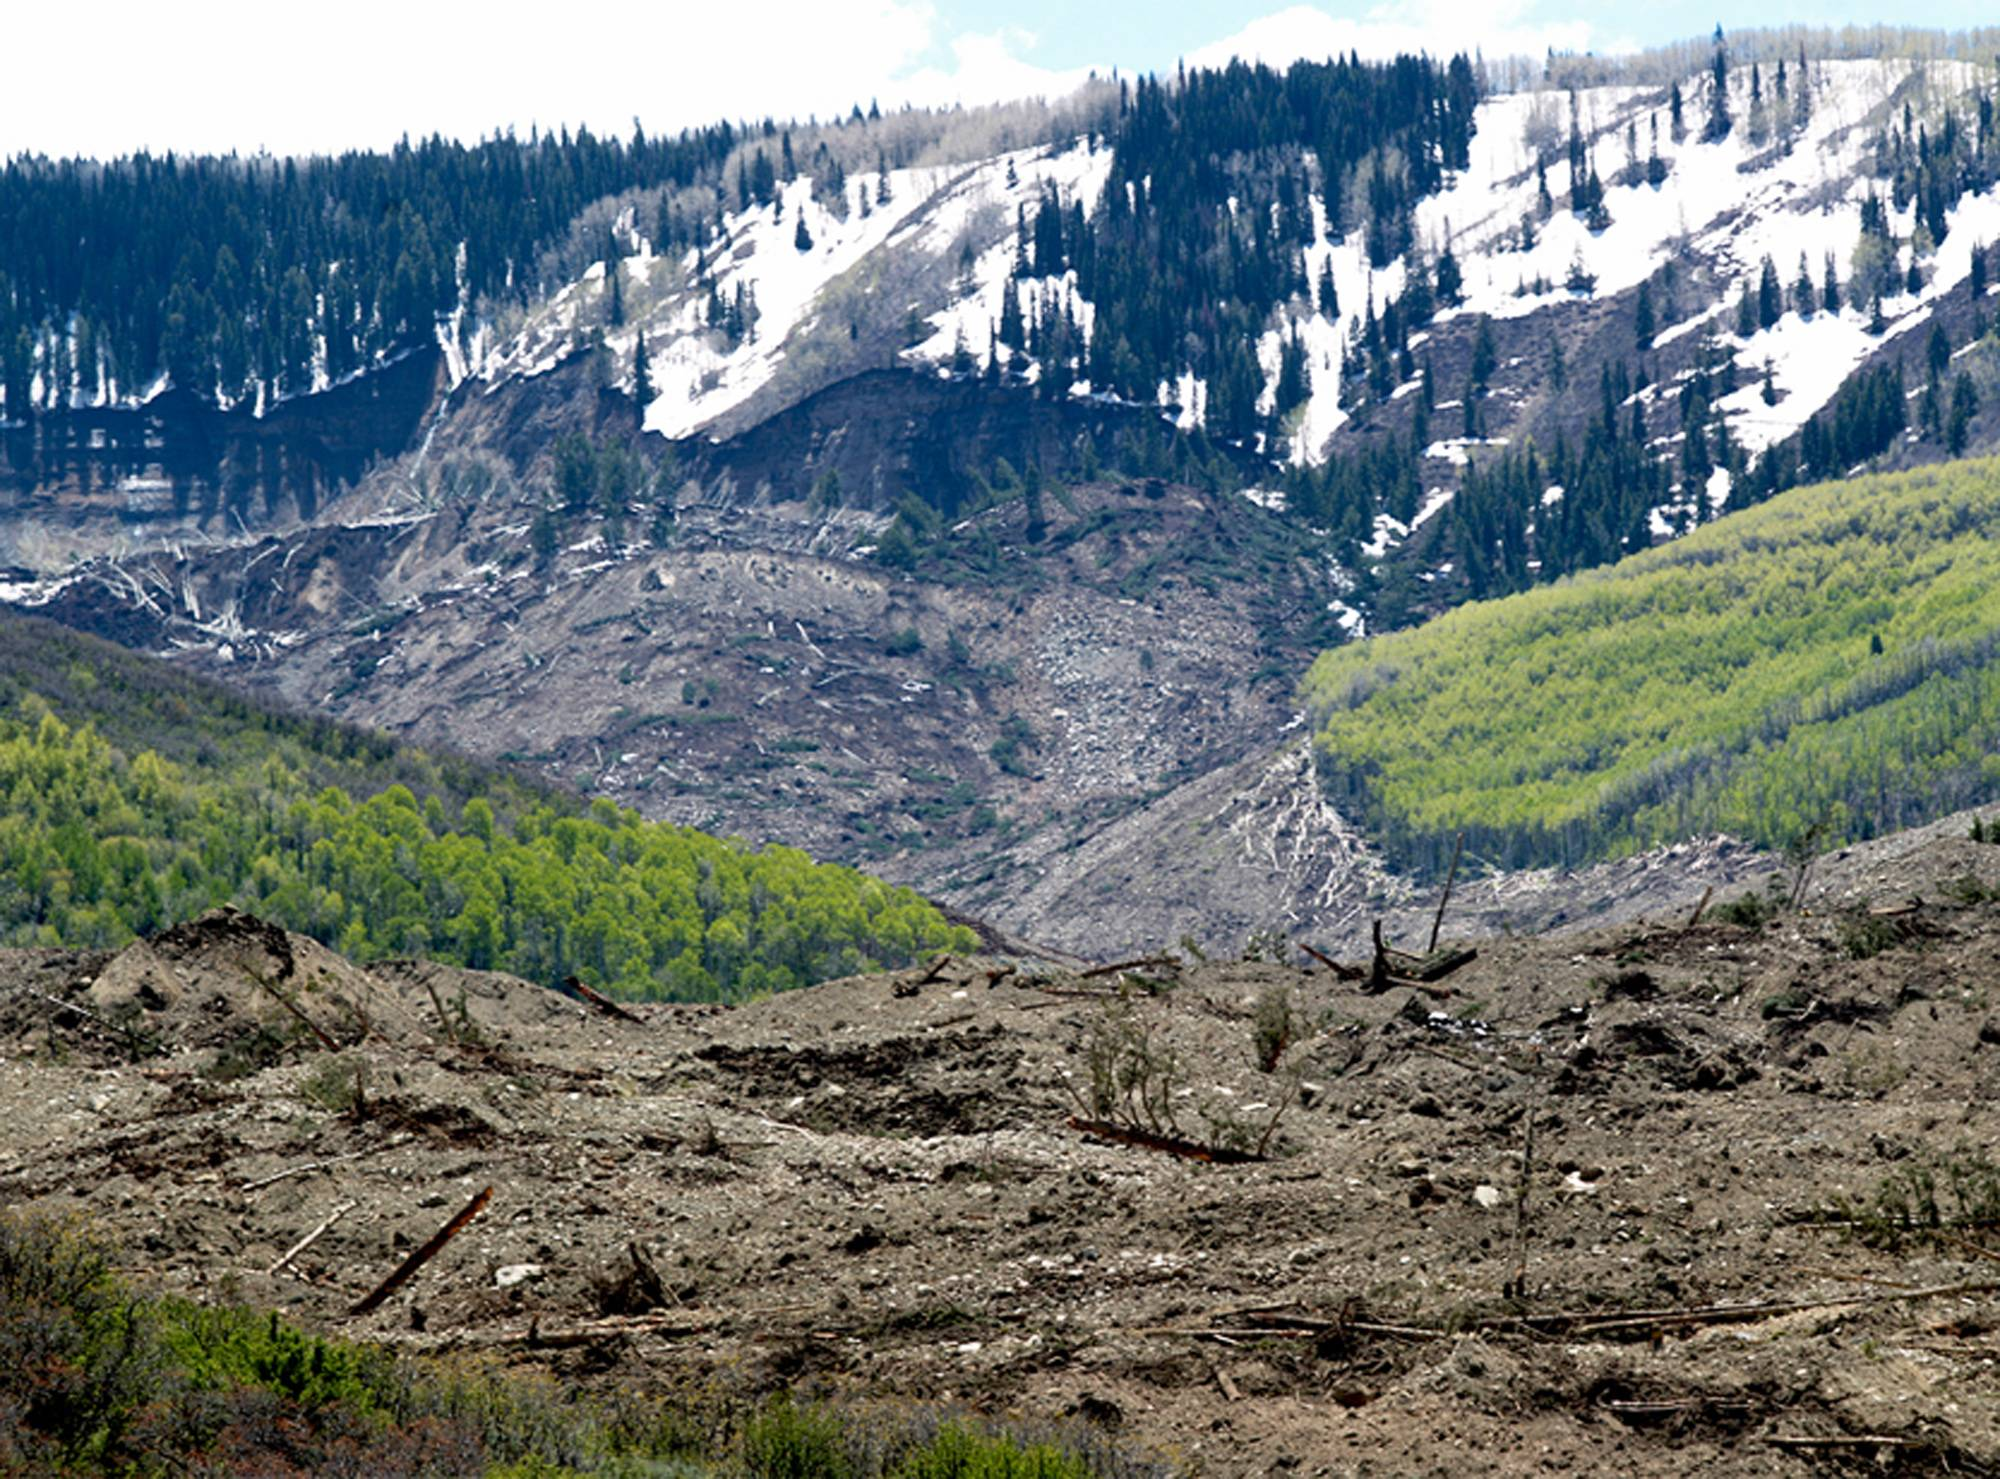 Colorado mudslide still unstable, hampering search